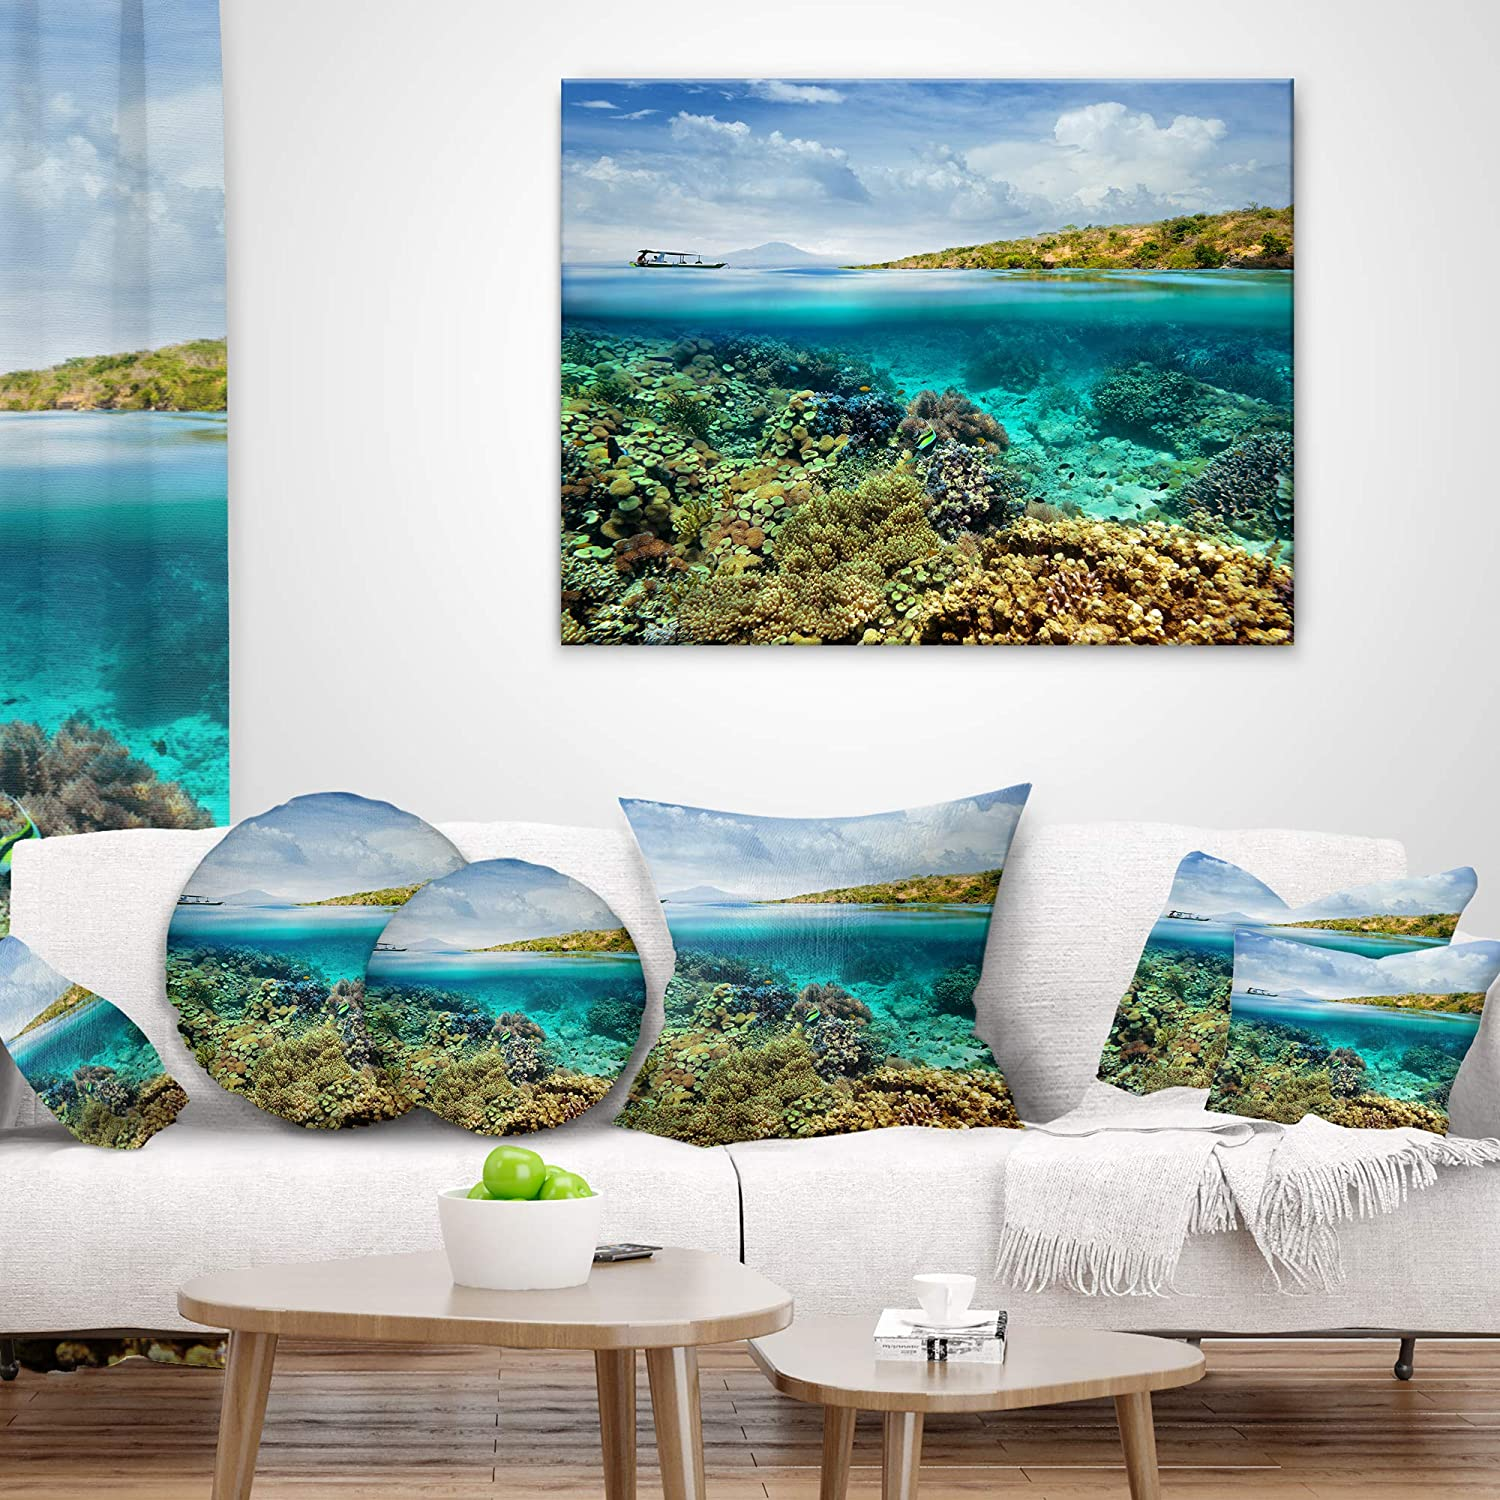 x 20 in Designart CU7673-12-20 Coral Reef Island Seascape Throw Lumbar Cushion Pillow Cover for Living Room Cushion Cover Printed on Both Side Sofa Pillow Insert 12 in